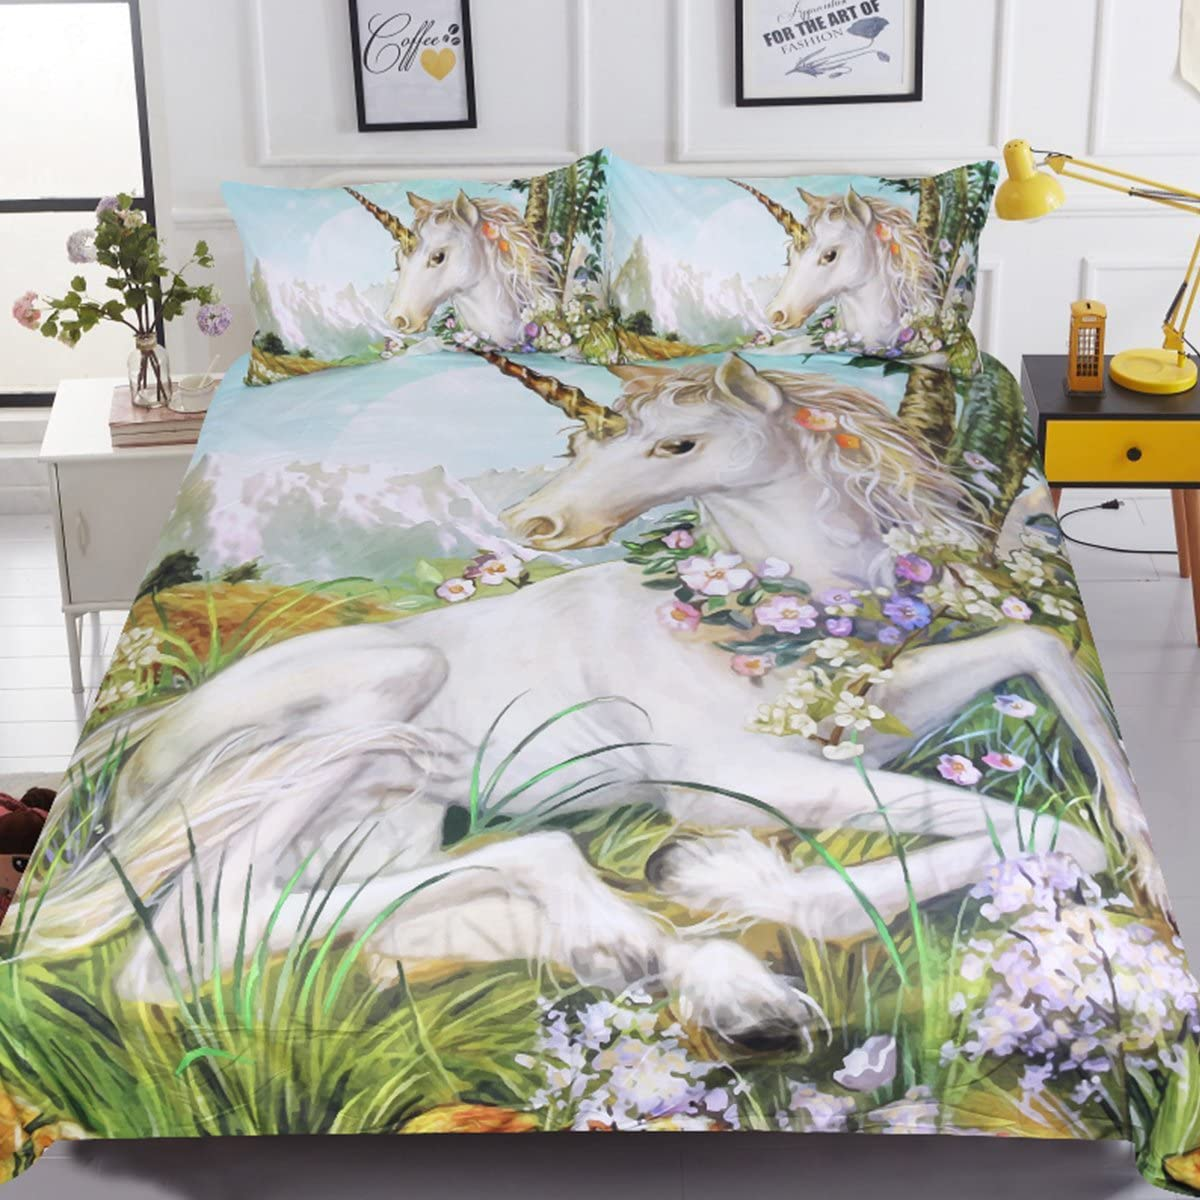 Sleepwish Unicorn Bedspread Courier shipping free 3 Green Plant Deluxe Garden Pieces